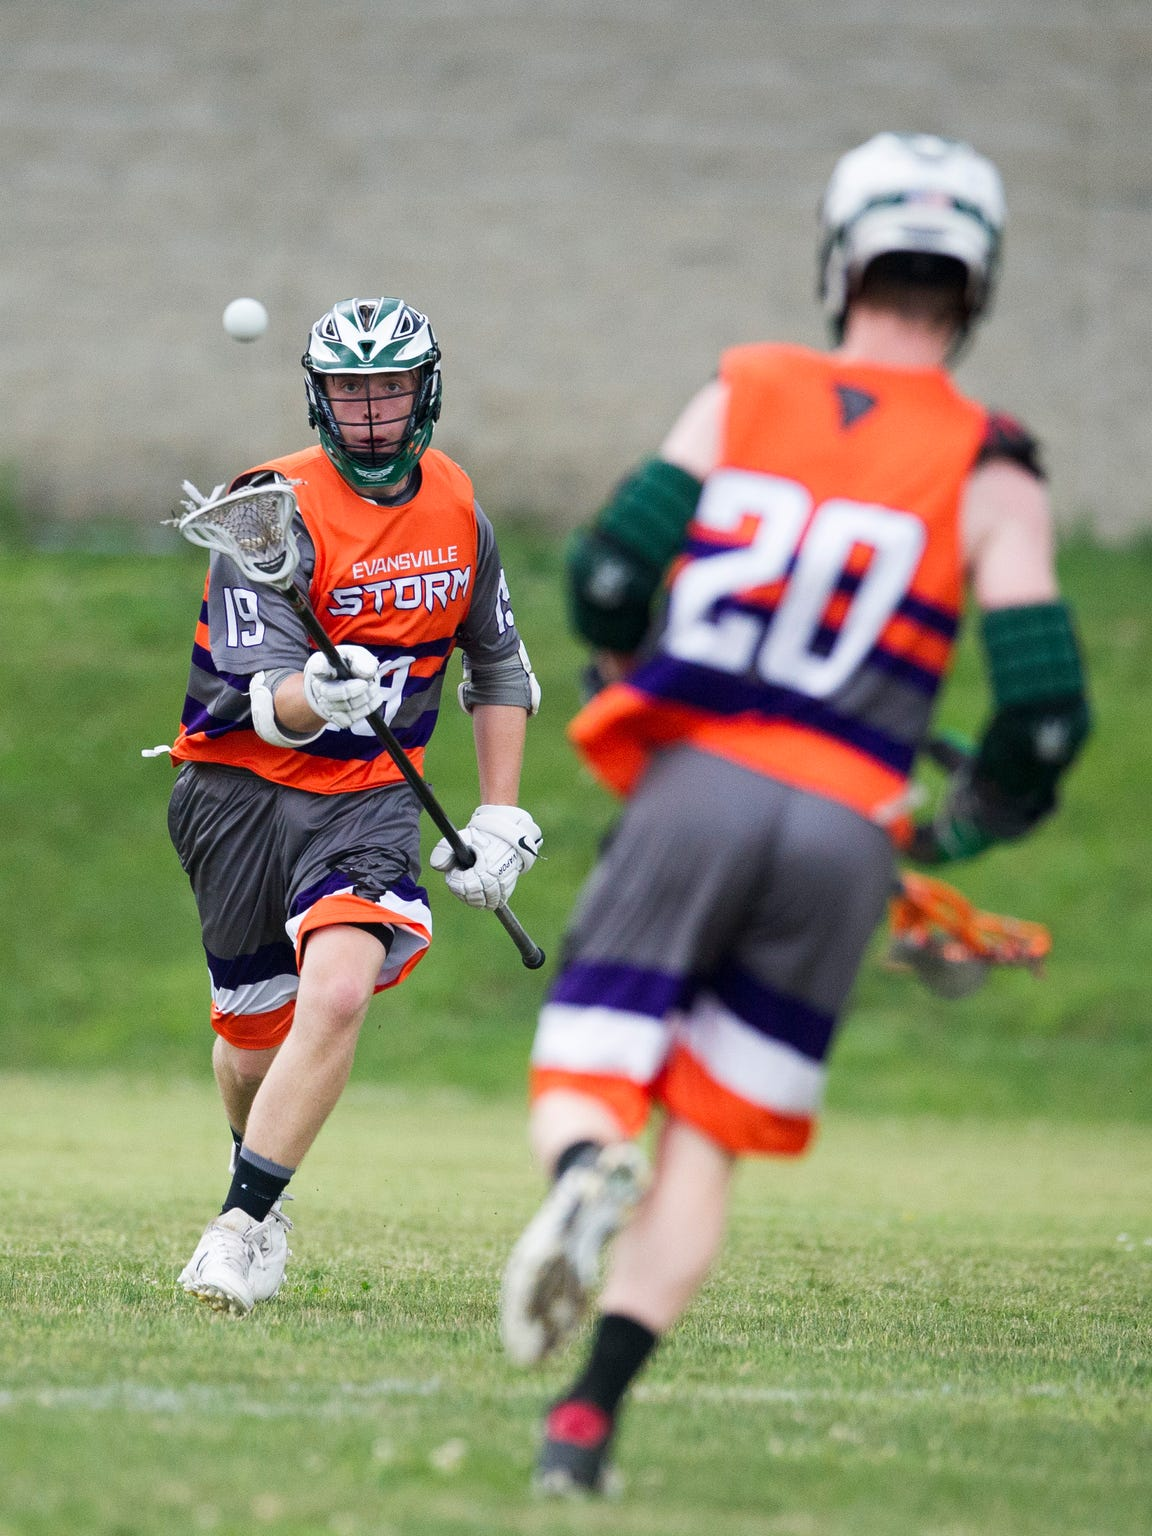 Eville Storm U19's Eli J. attempts to cradle the ball